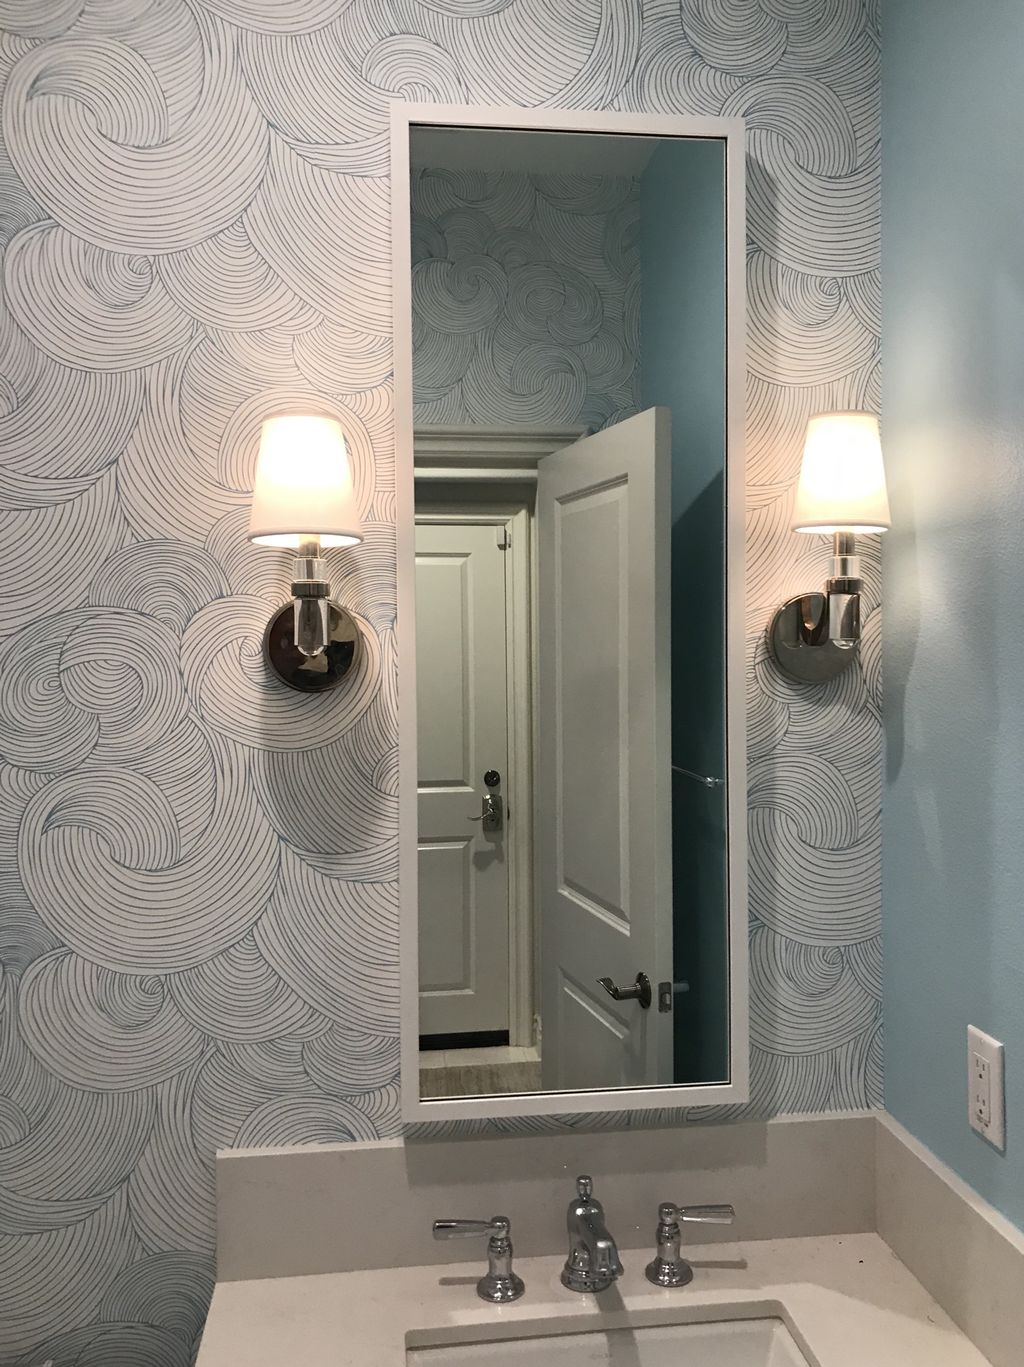 Sconce & Mirror Installation